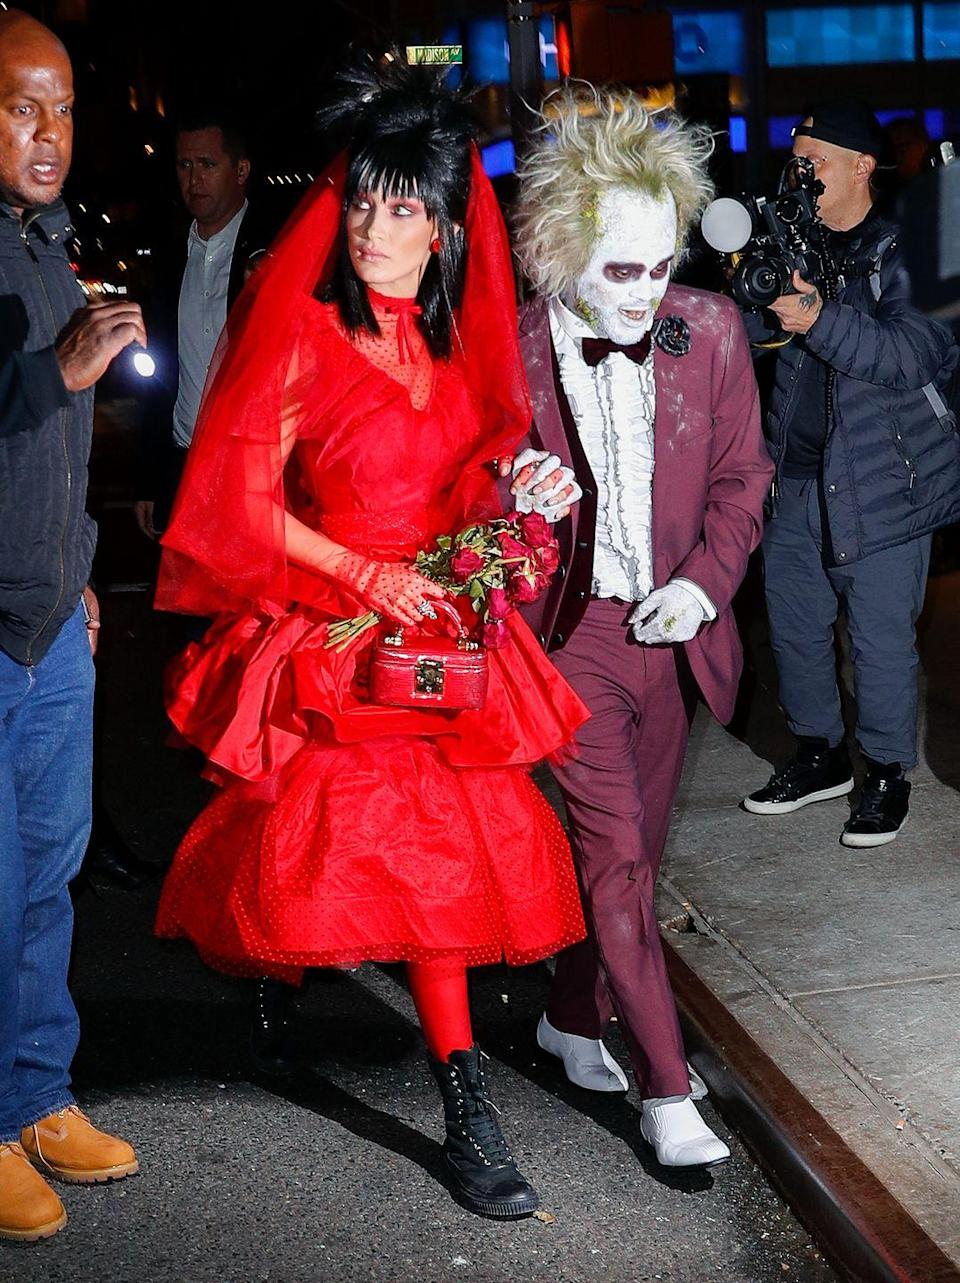 <p>In 2018, Bella Hadid and The Weeknd raised the bar on all future couples costumes by looking unrecognizable as Lydia and Beetlejuice from the classic 1988 movie.</p>